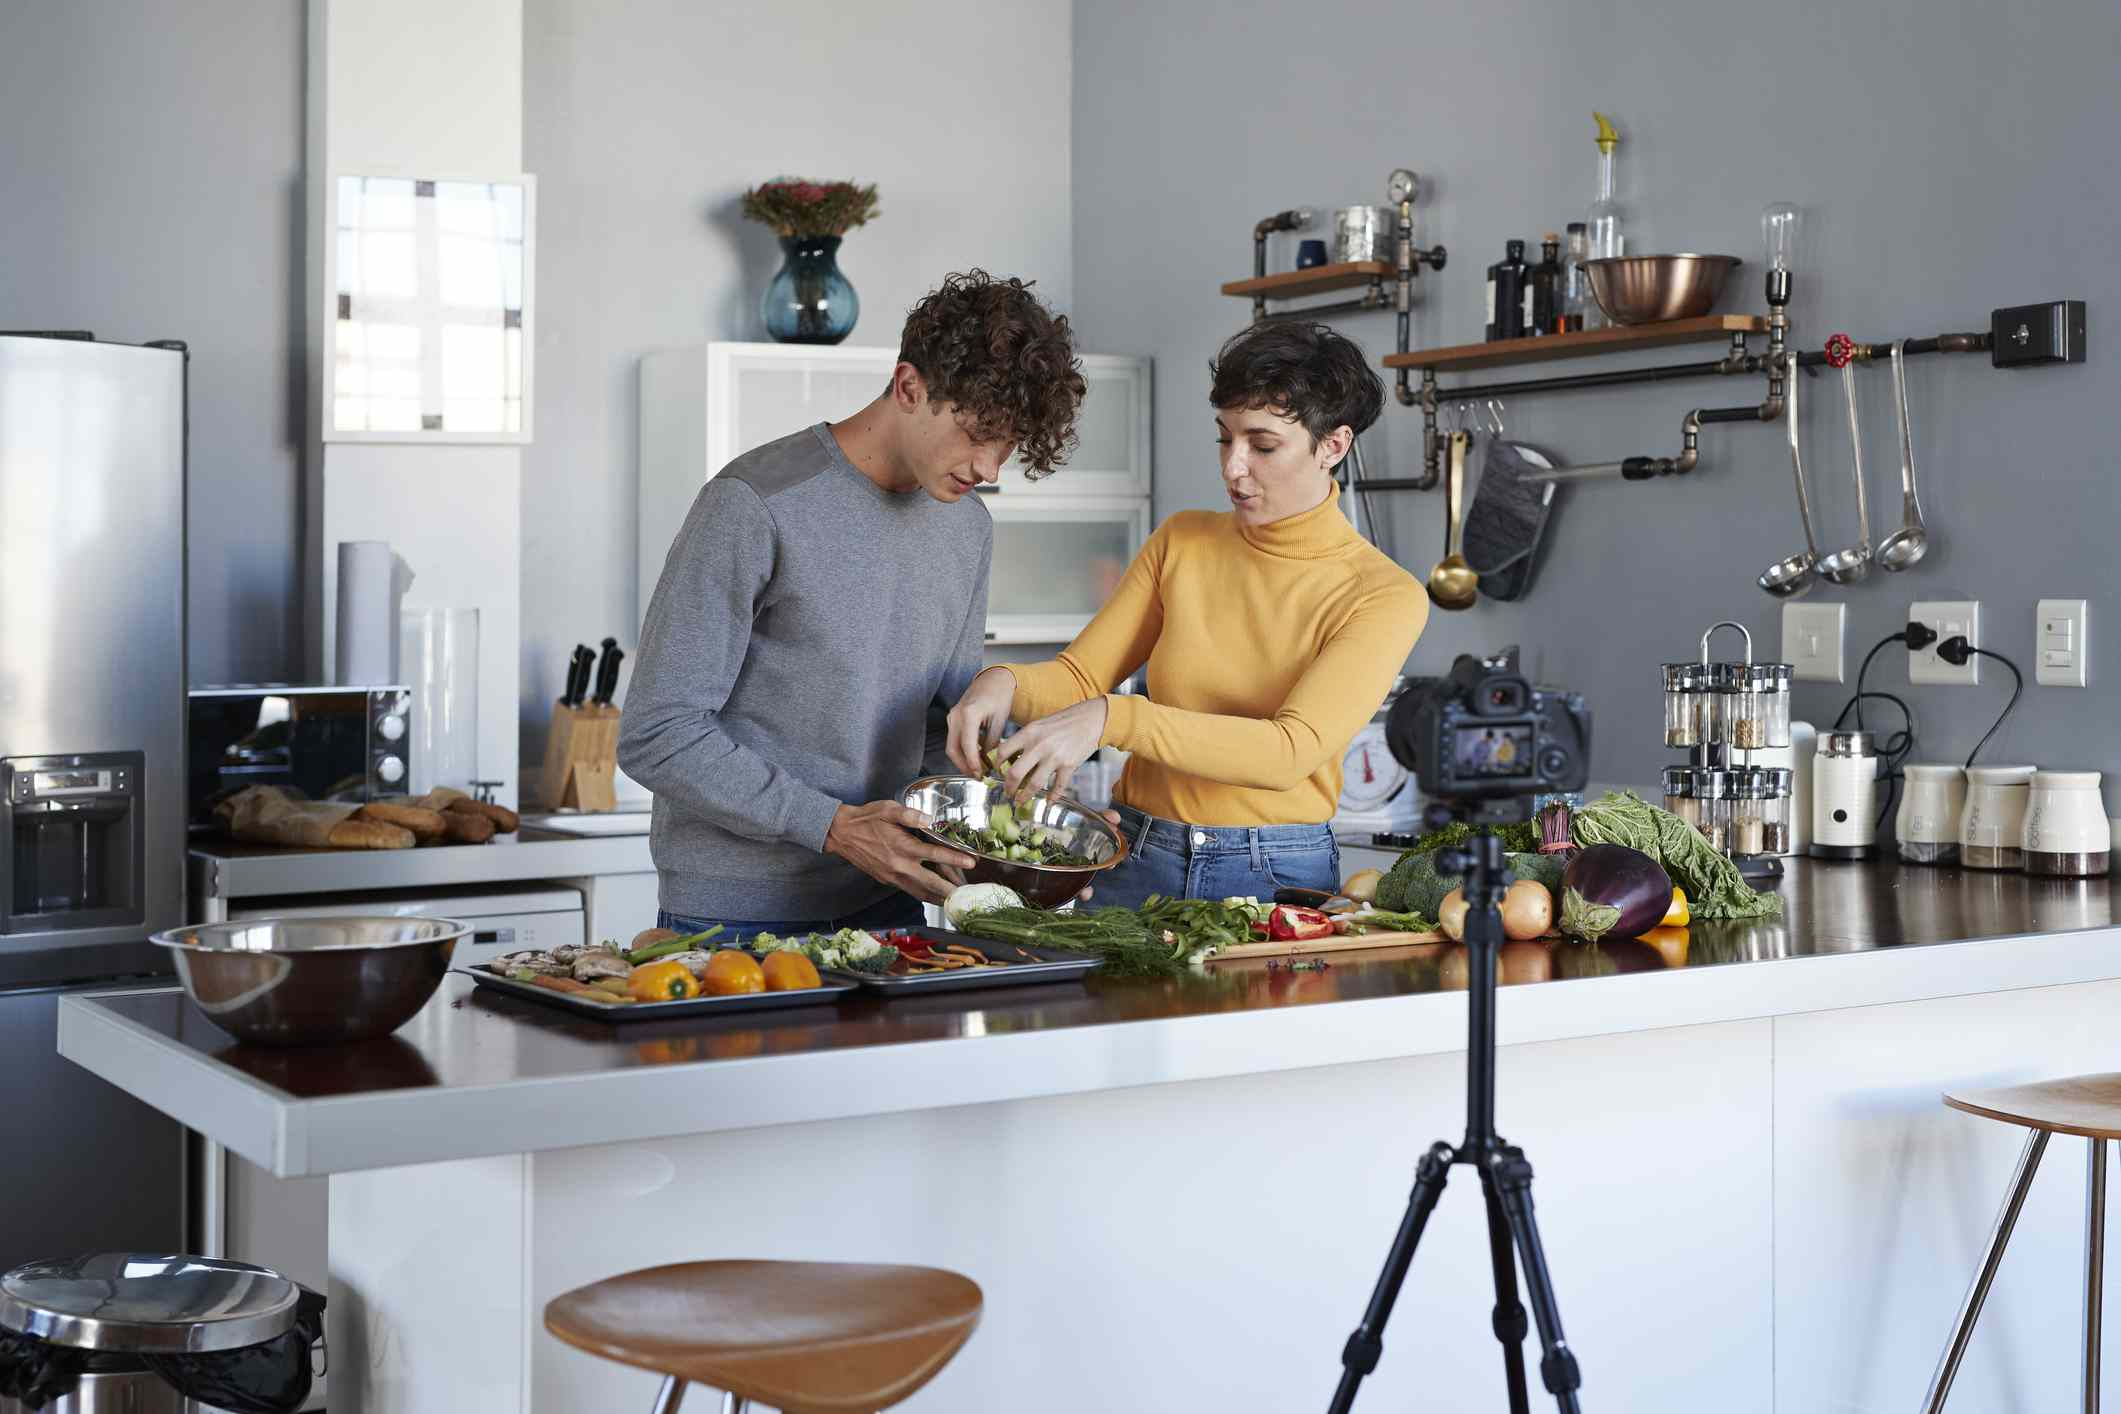 Two food vloggers making video while prepping vegetables in kitchen